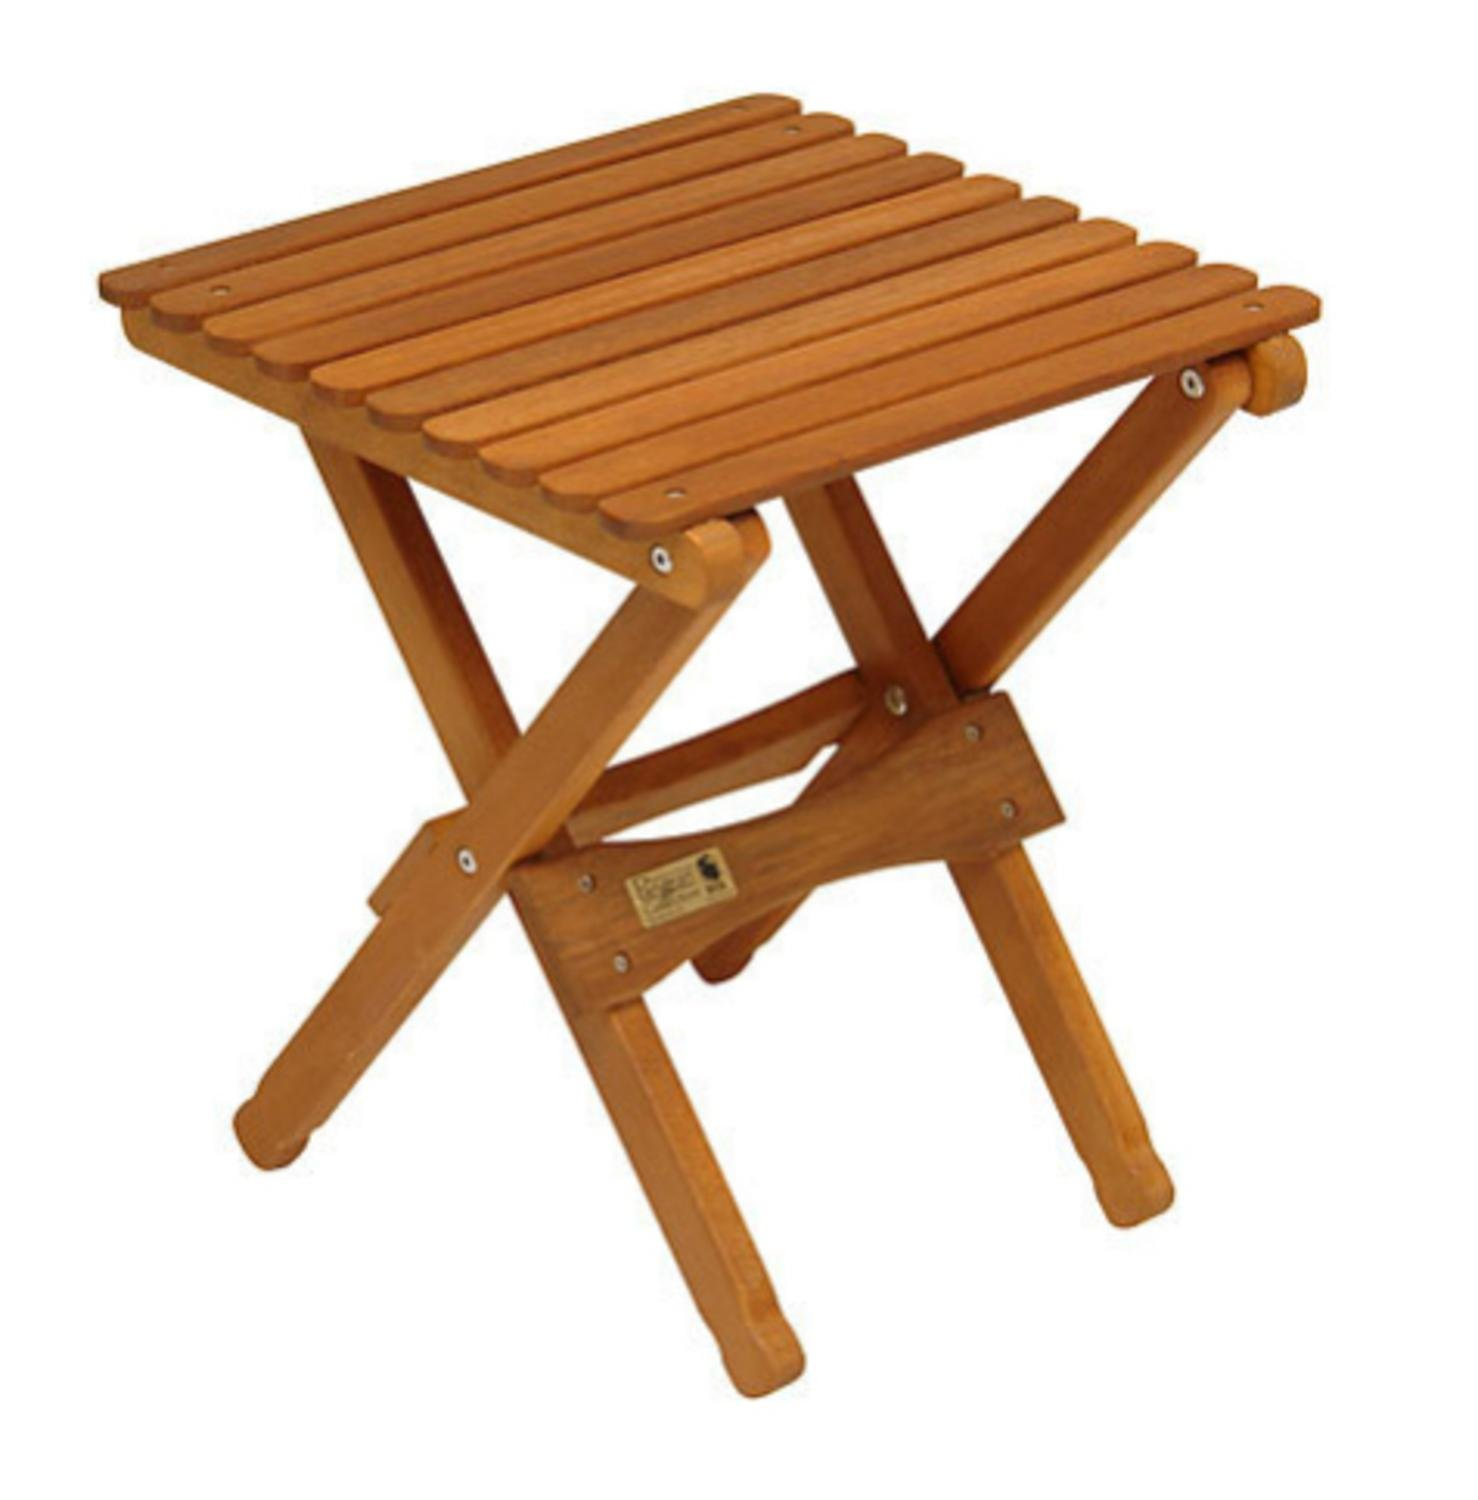 Amazon com byer of maine 18 wooden camping and patio outdoor folding end table natural finish byer maine folding table garden outdoor